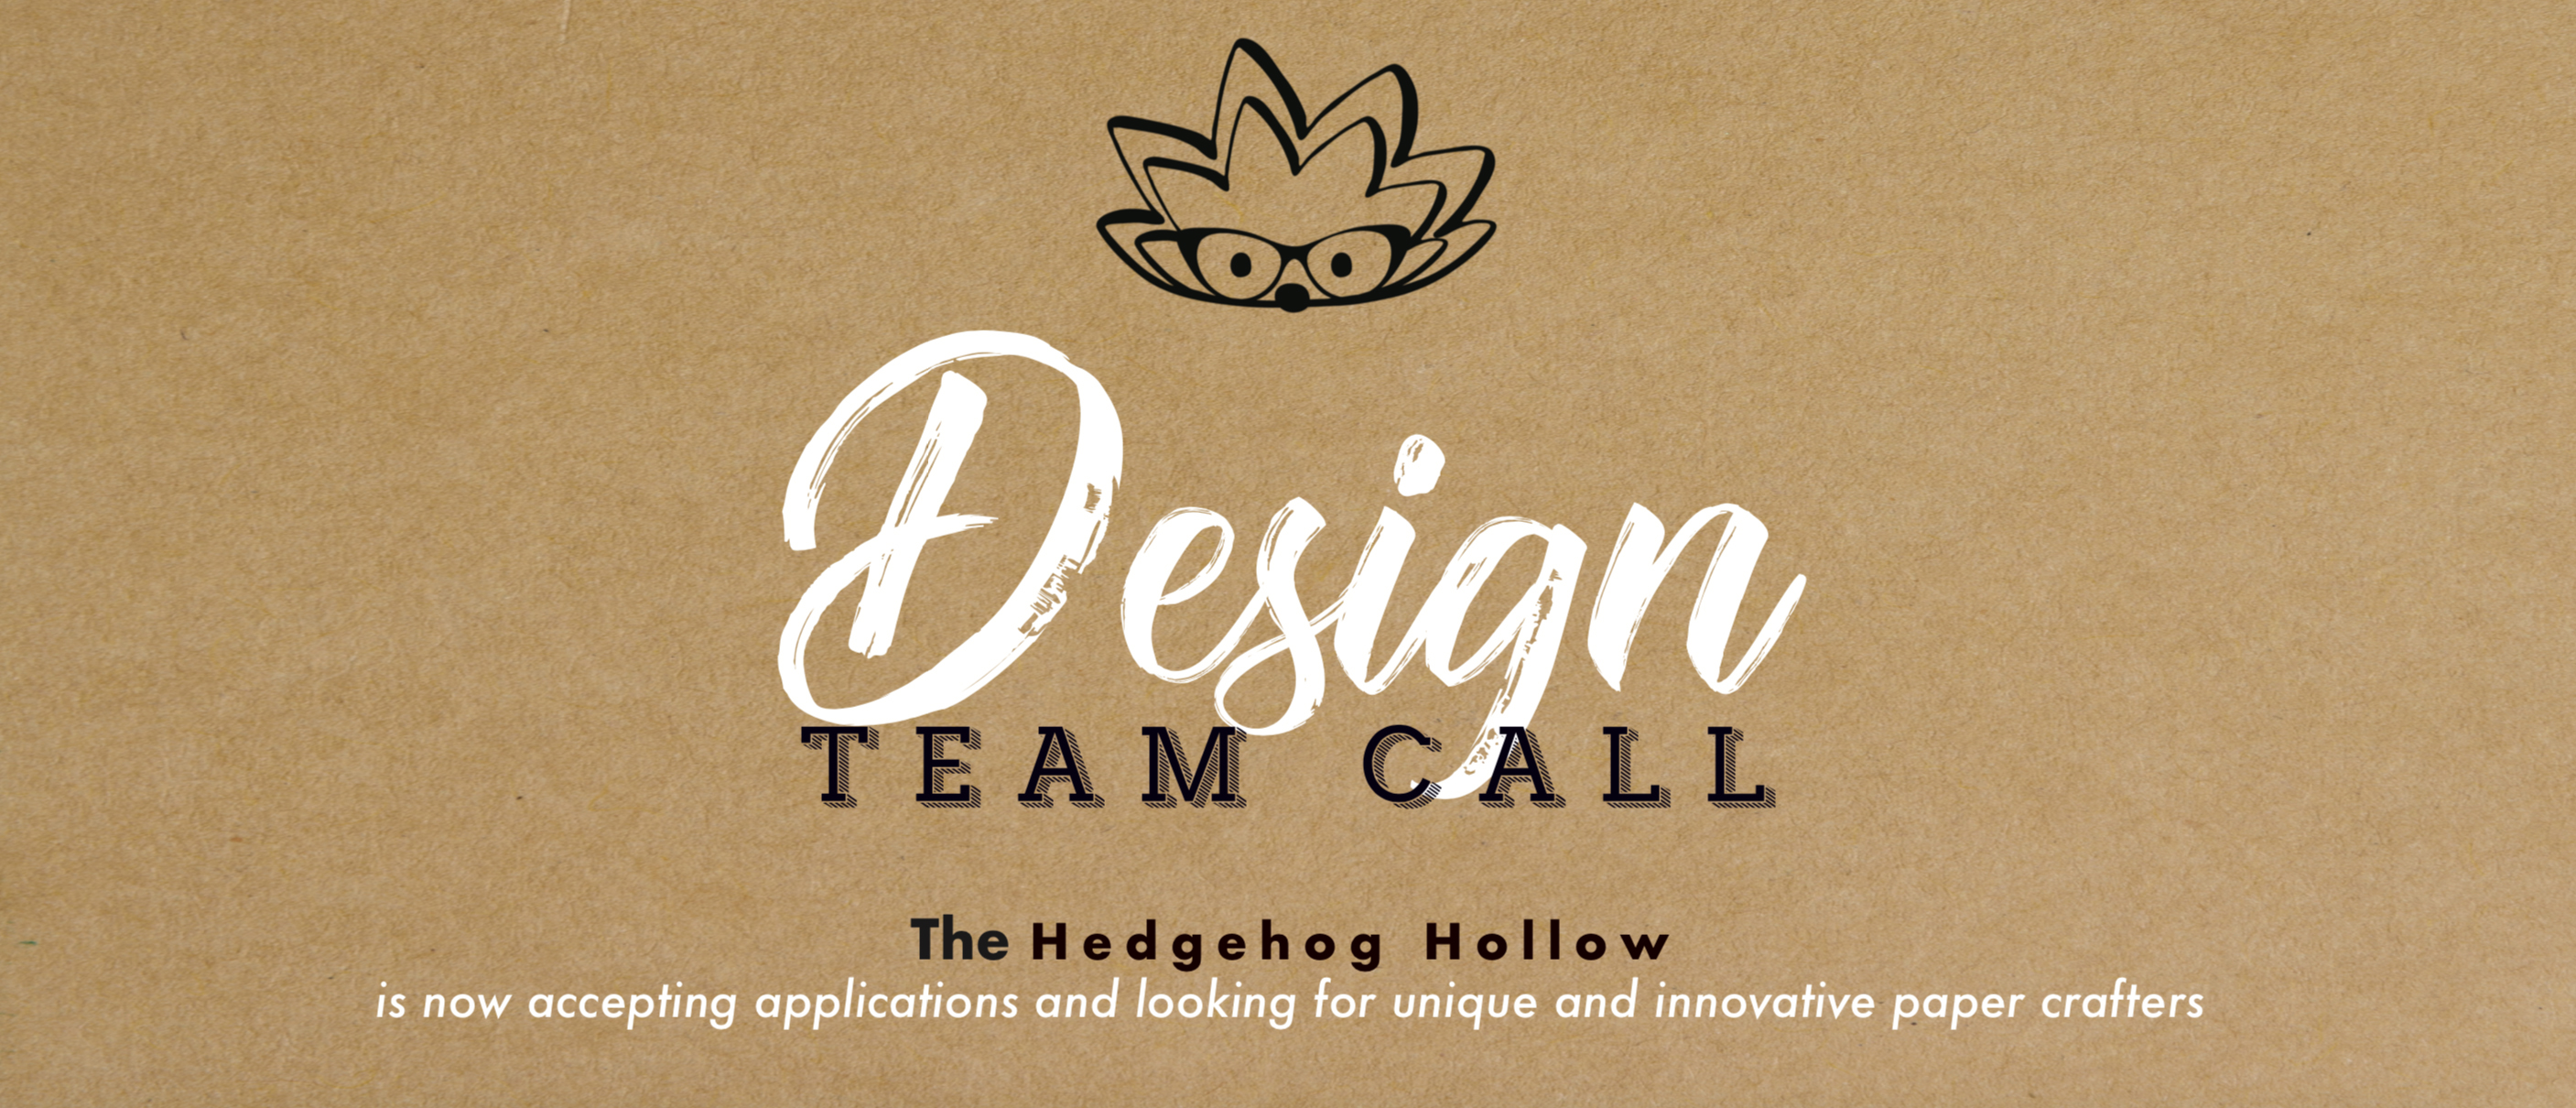 Global Design Team Call Now Open!